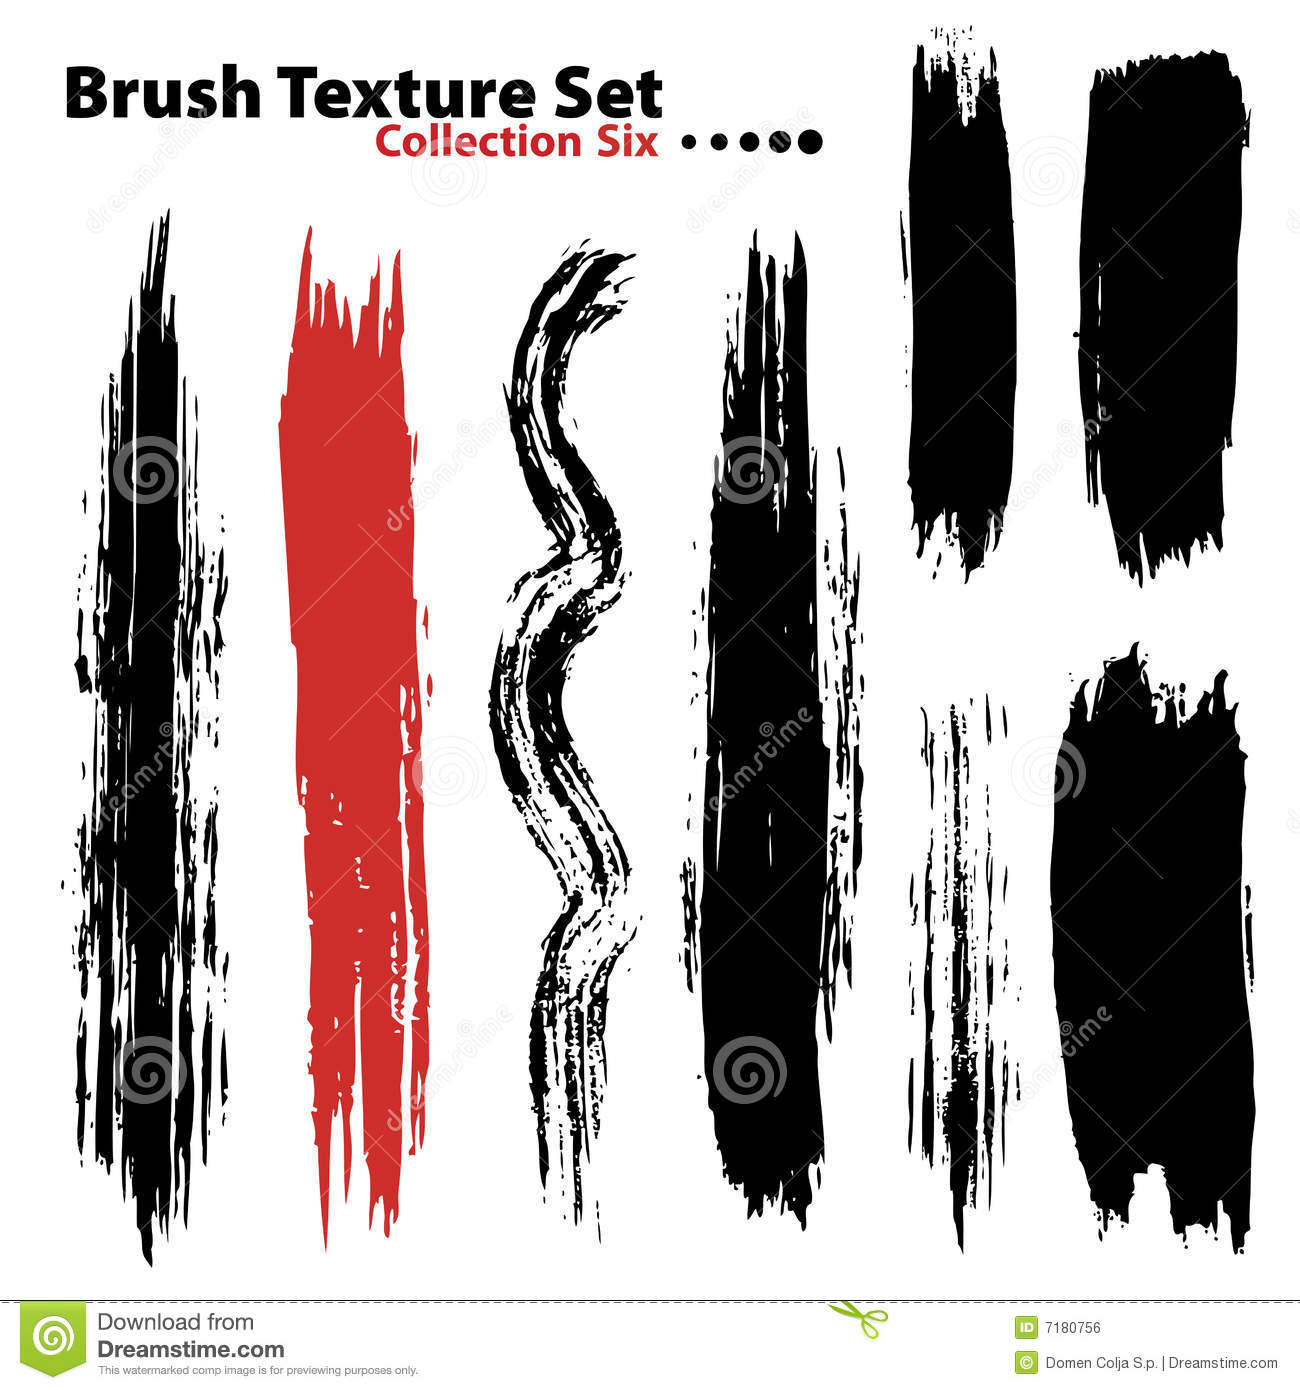 How To Make All Natural Paint Brush